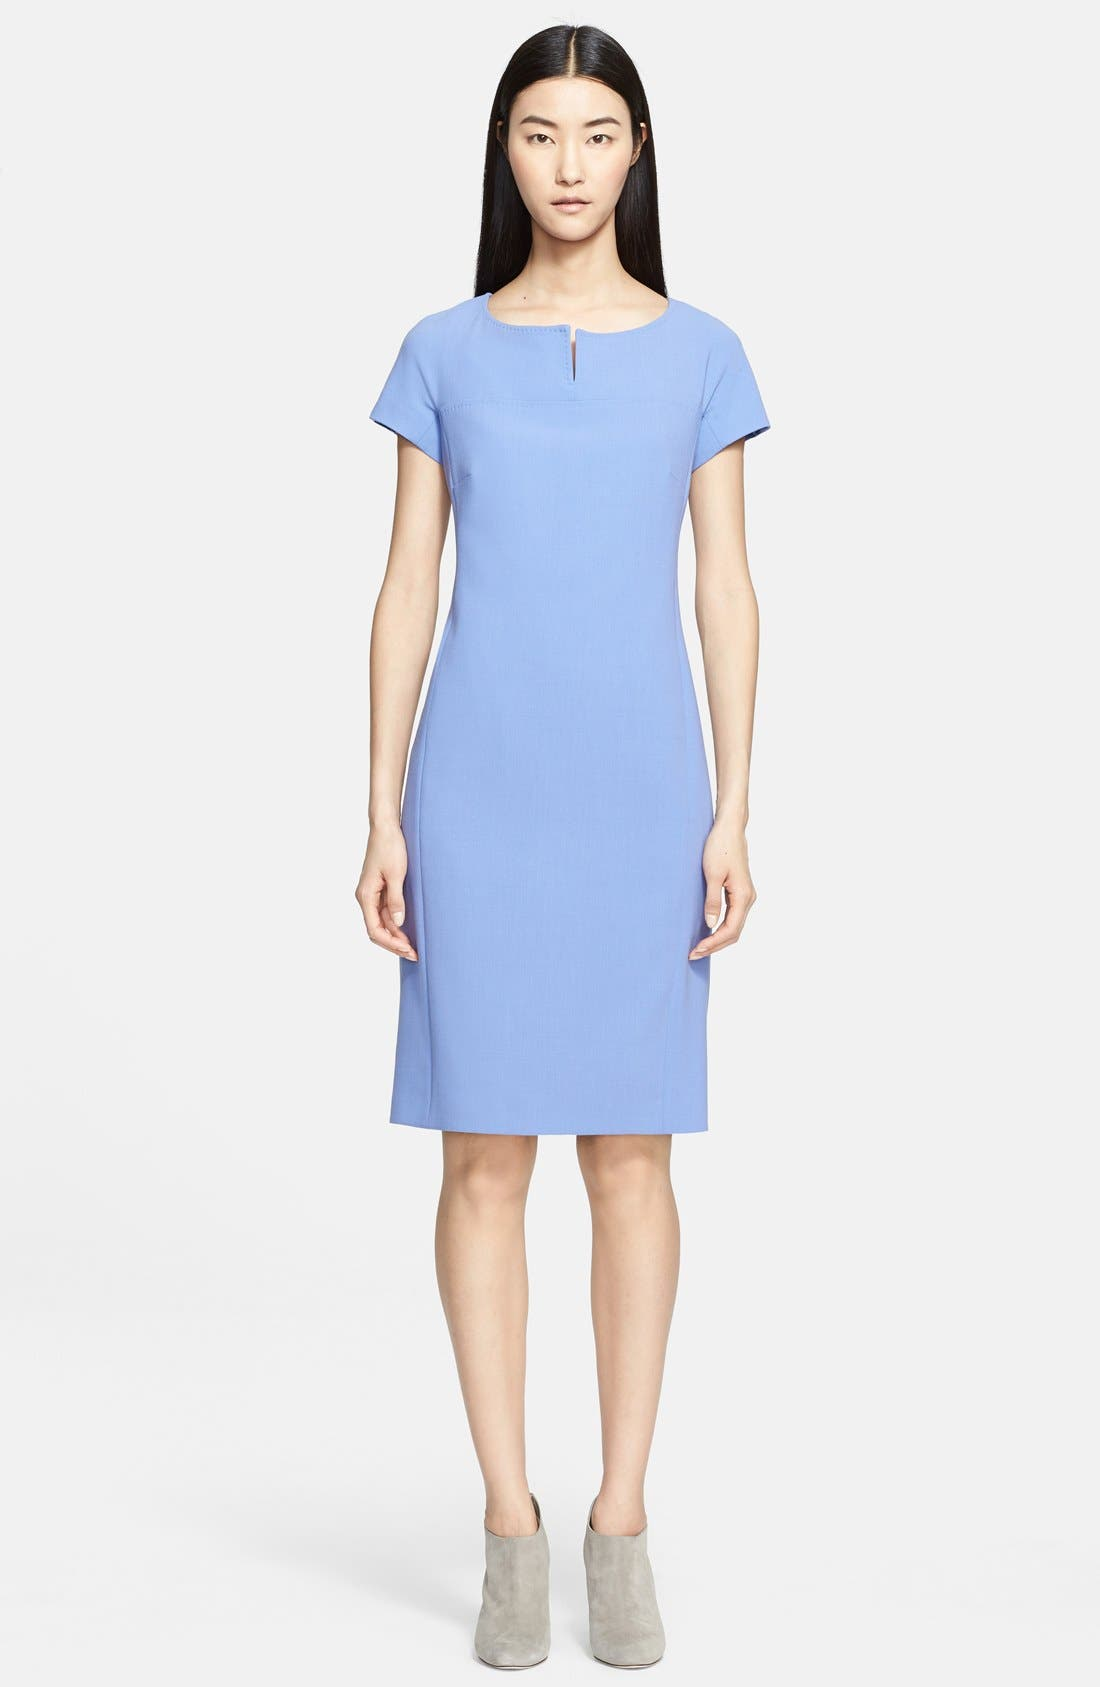 Main Image - Max Mara 'Fiamma Doppio' Wool Crepe Dress